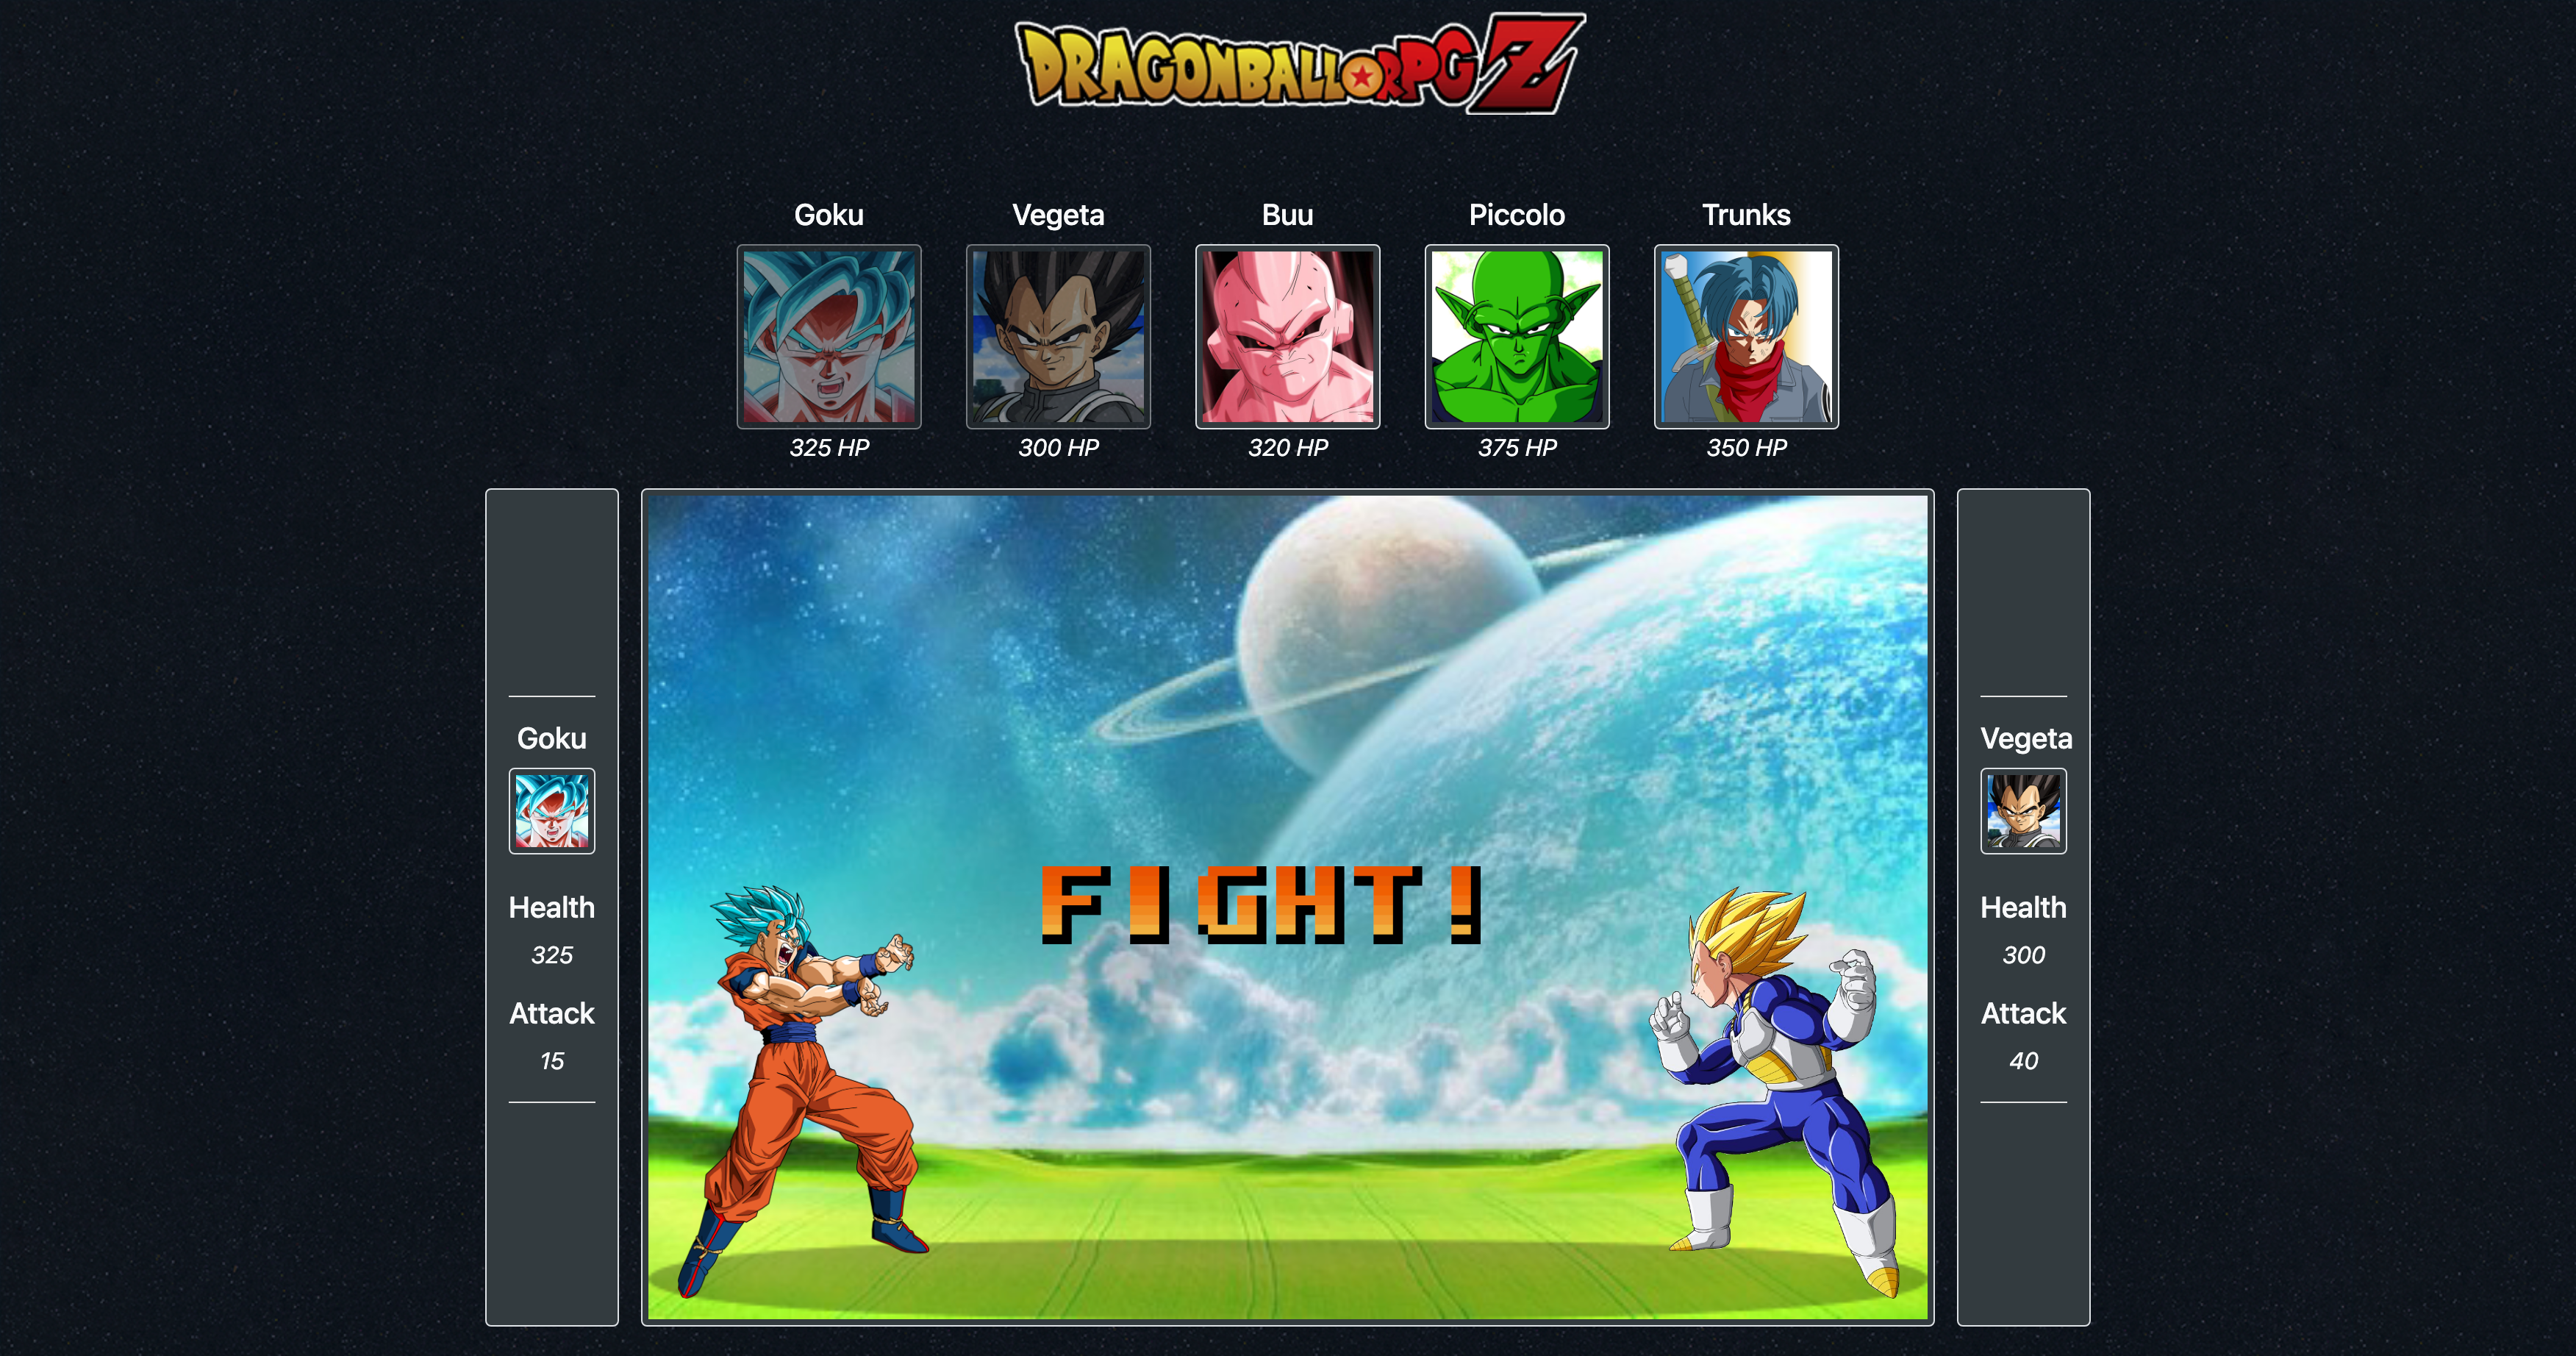 A turn based jQuery RPG using Dragonball Z as the theme. *This was one of the first apps I developed and as such it is not mobile friendly*